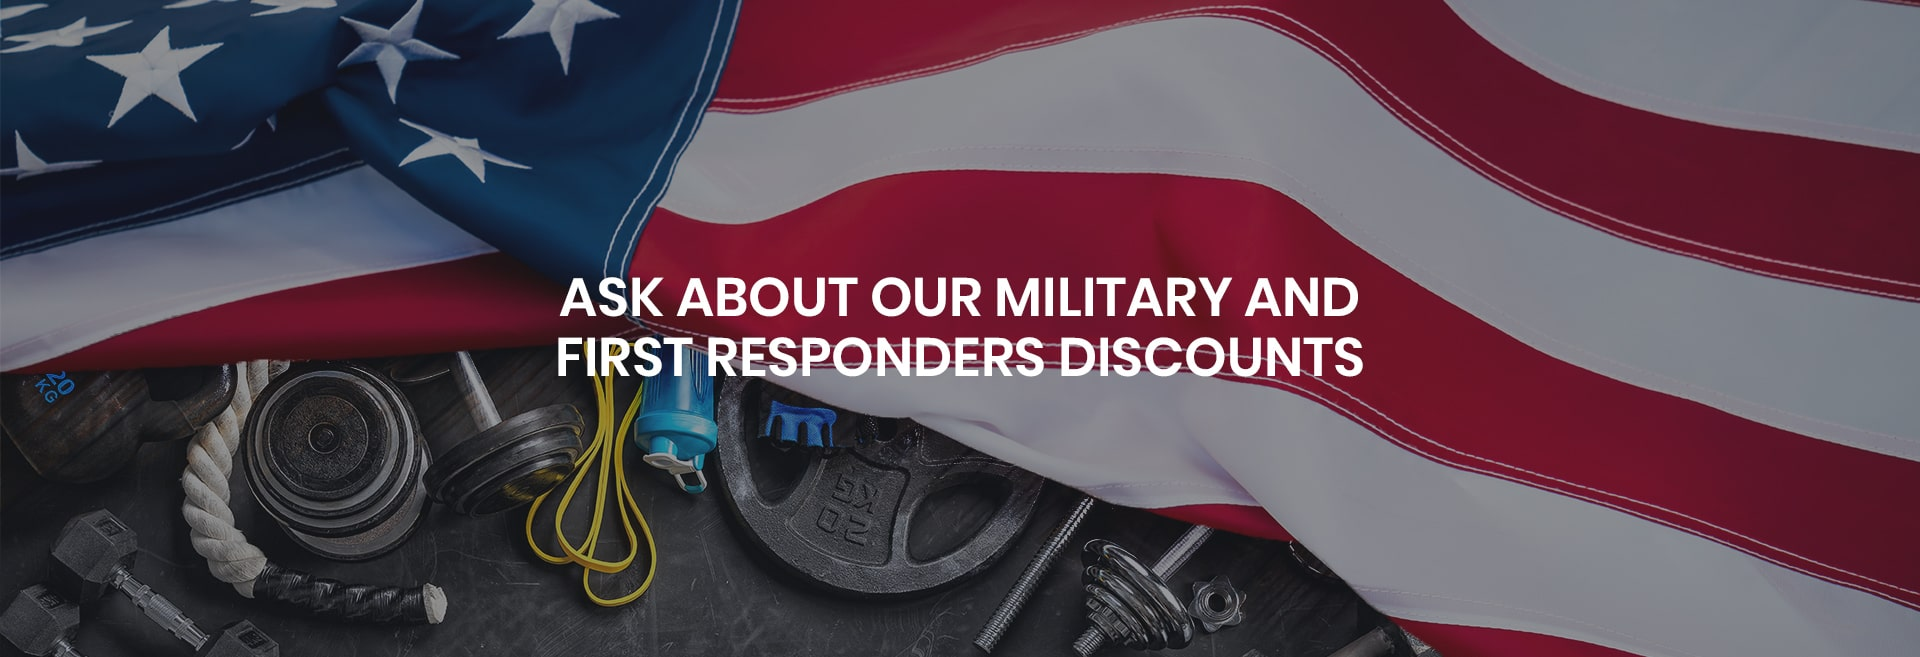 Fitness Gallery Military Discounts - First Responders